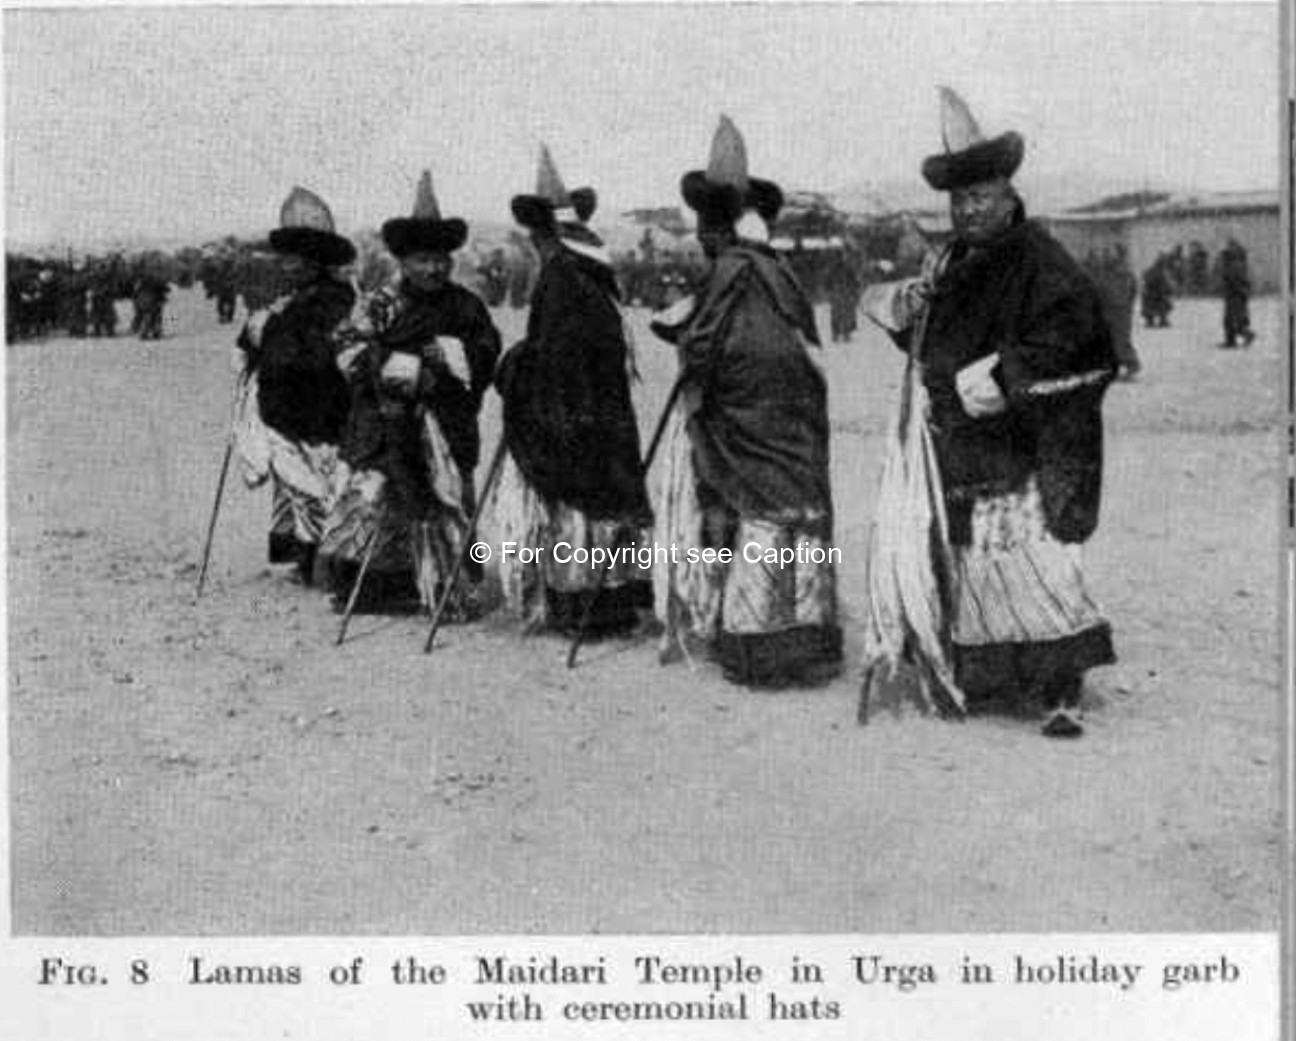 Disciplinary monks. Consten, H., Lamaism in Mongolia.